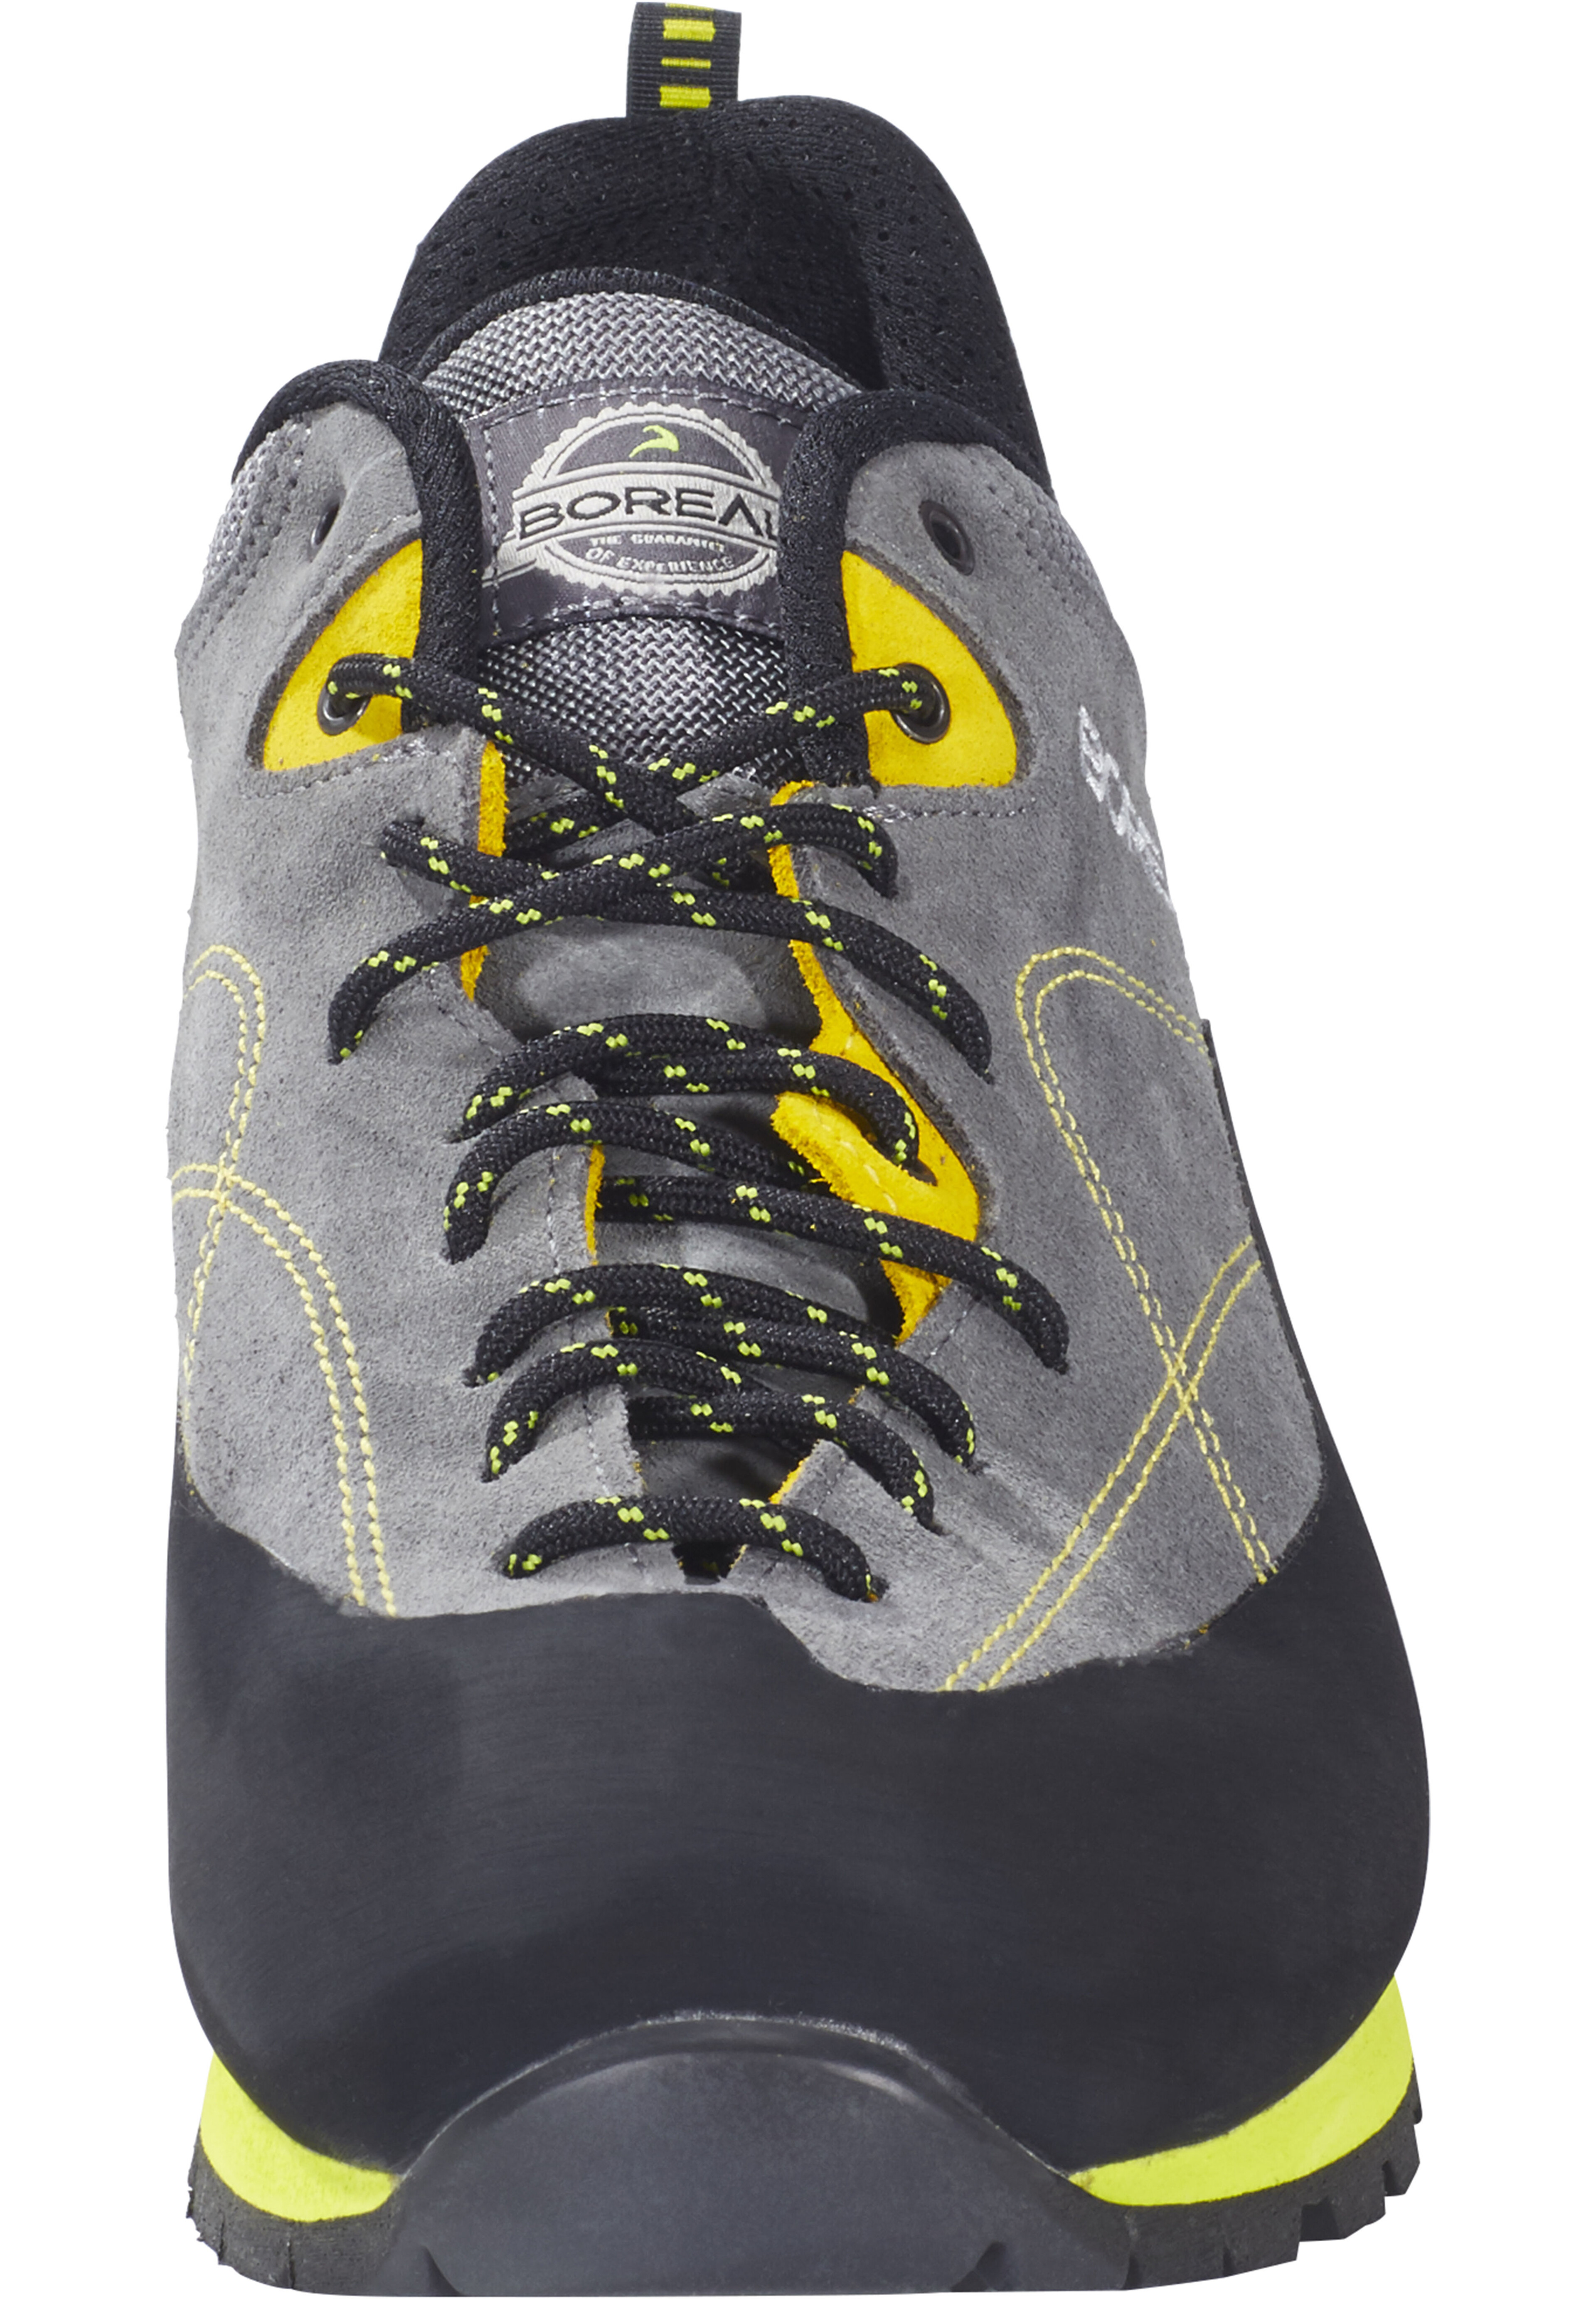 a1f6091e208a Boreal Drom Shoes Men yellow grey at Addnature.co.uk